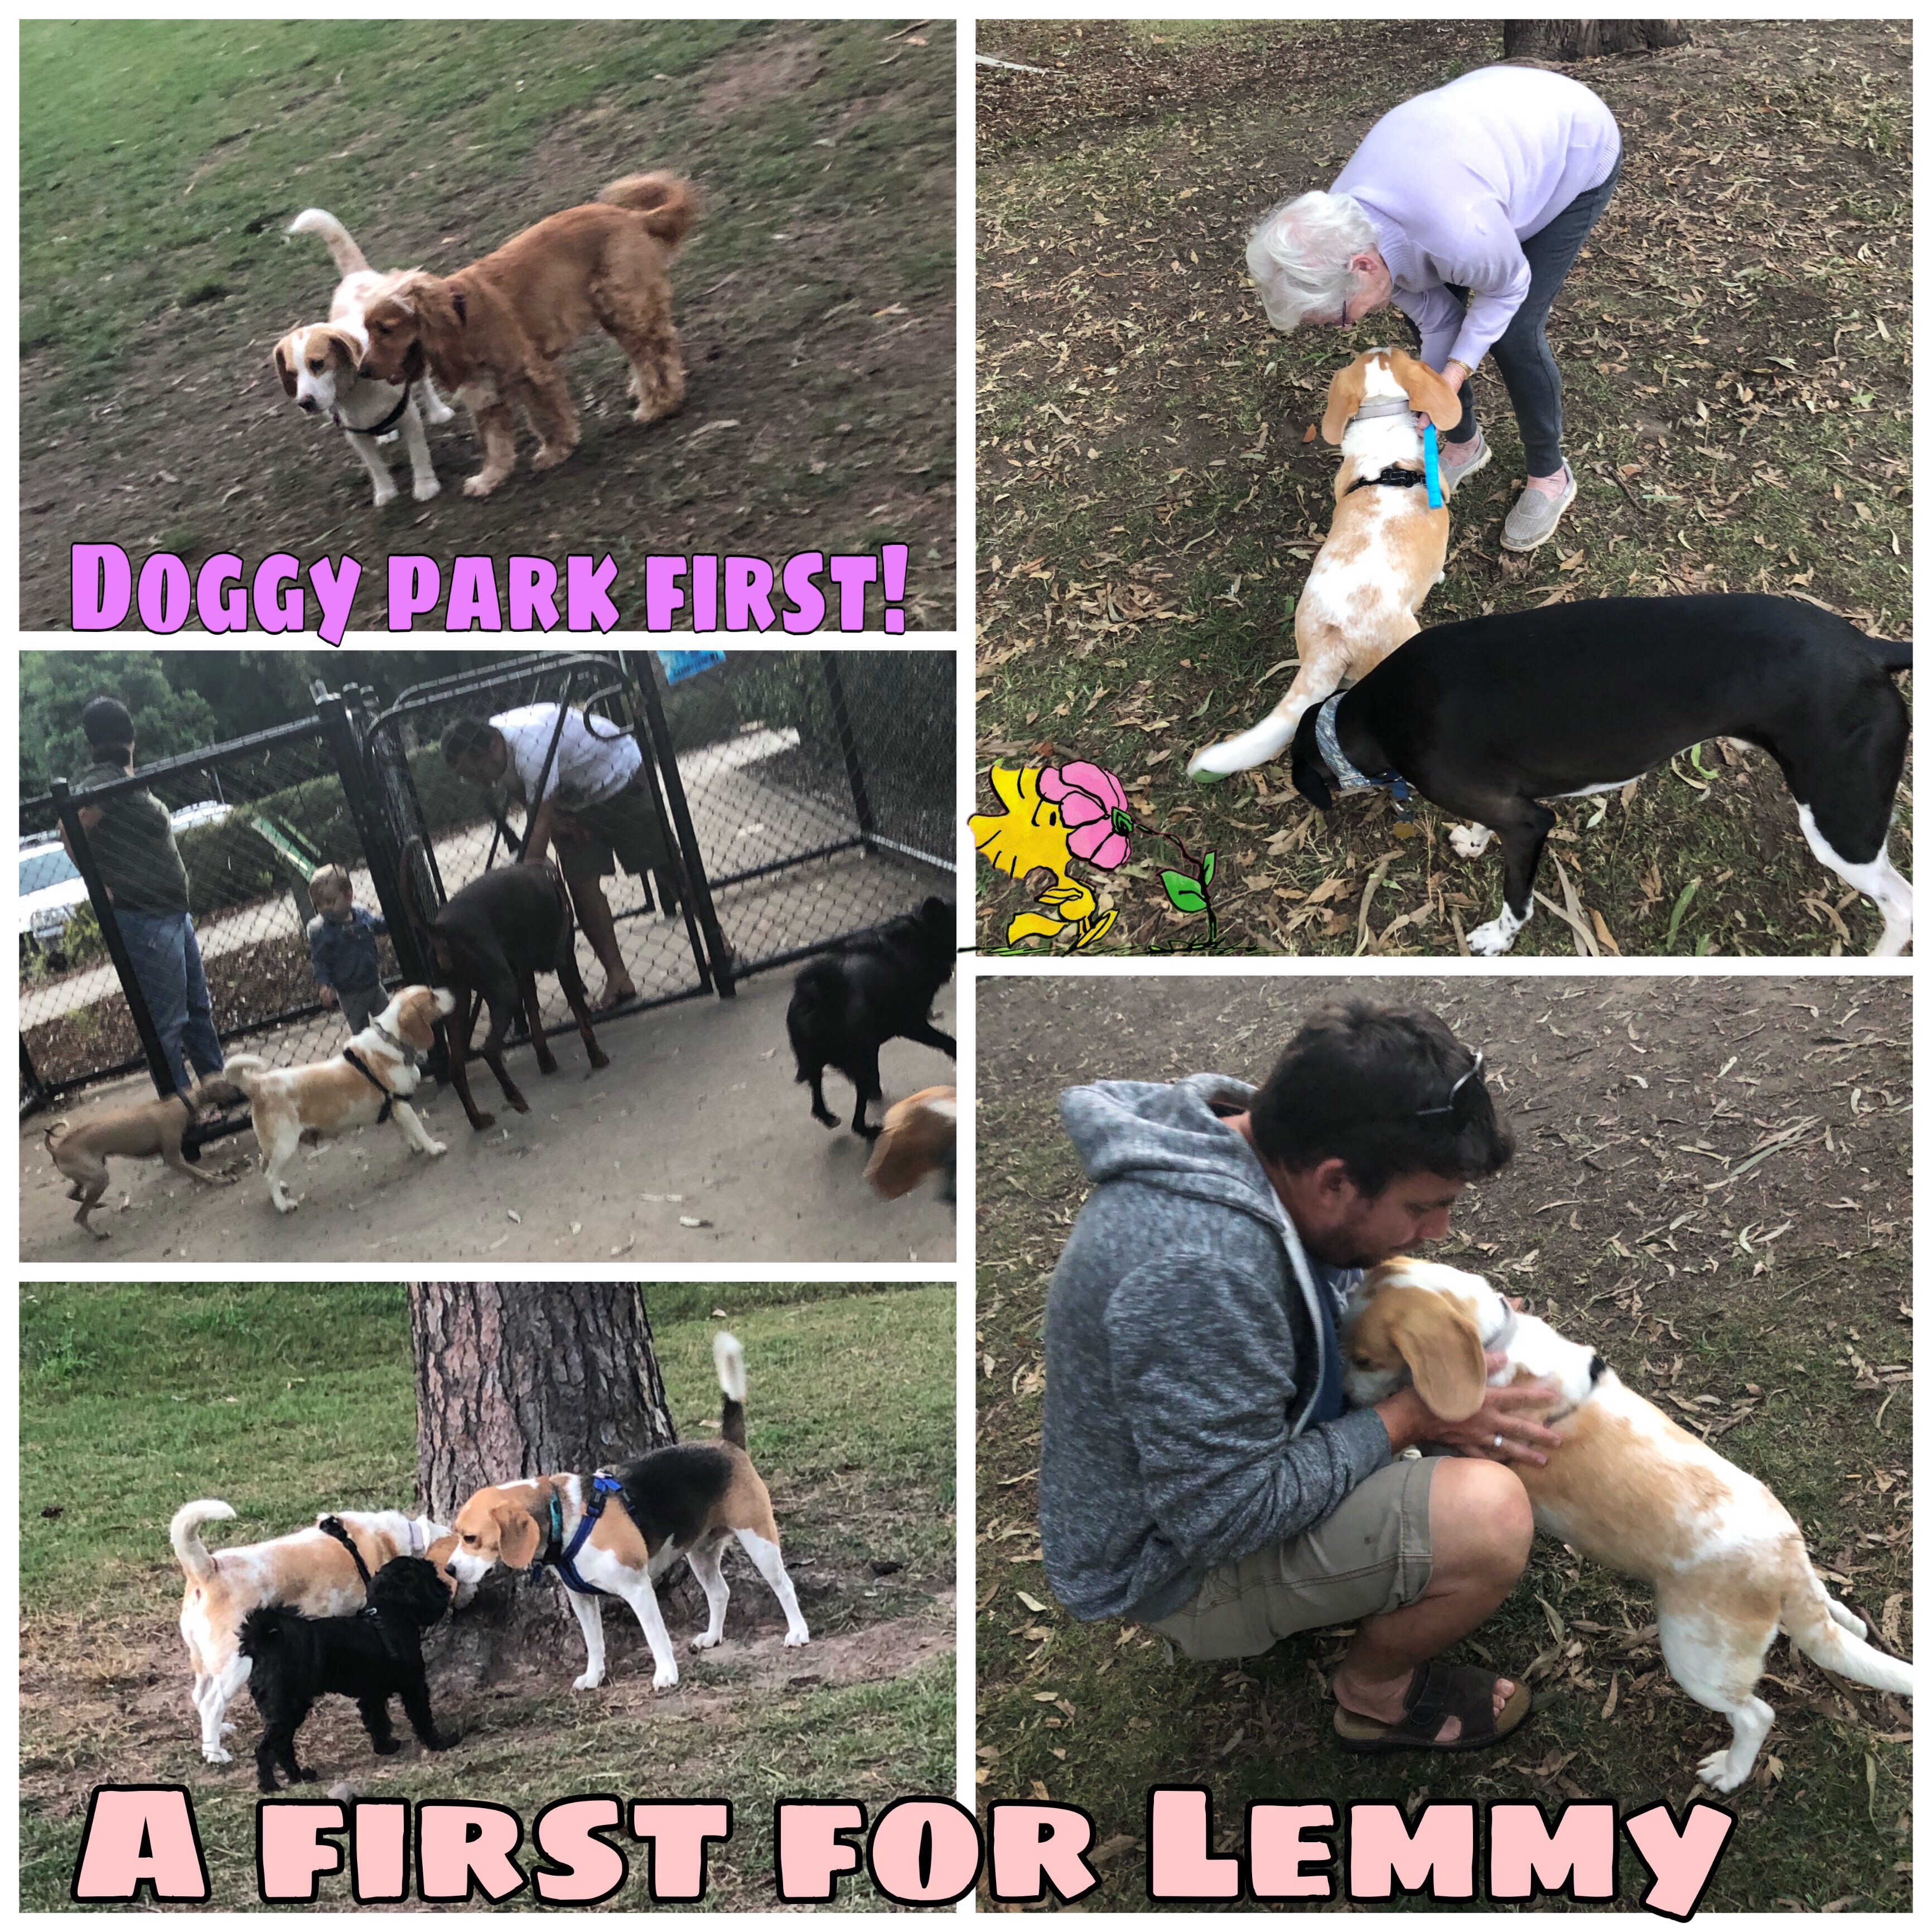 Lemmy is adopted